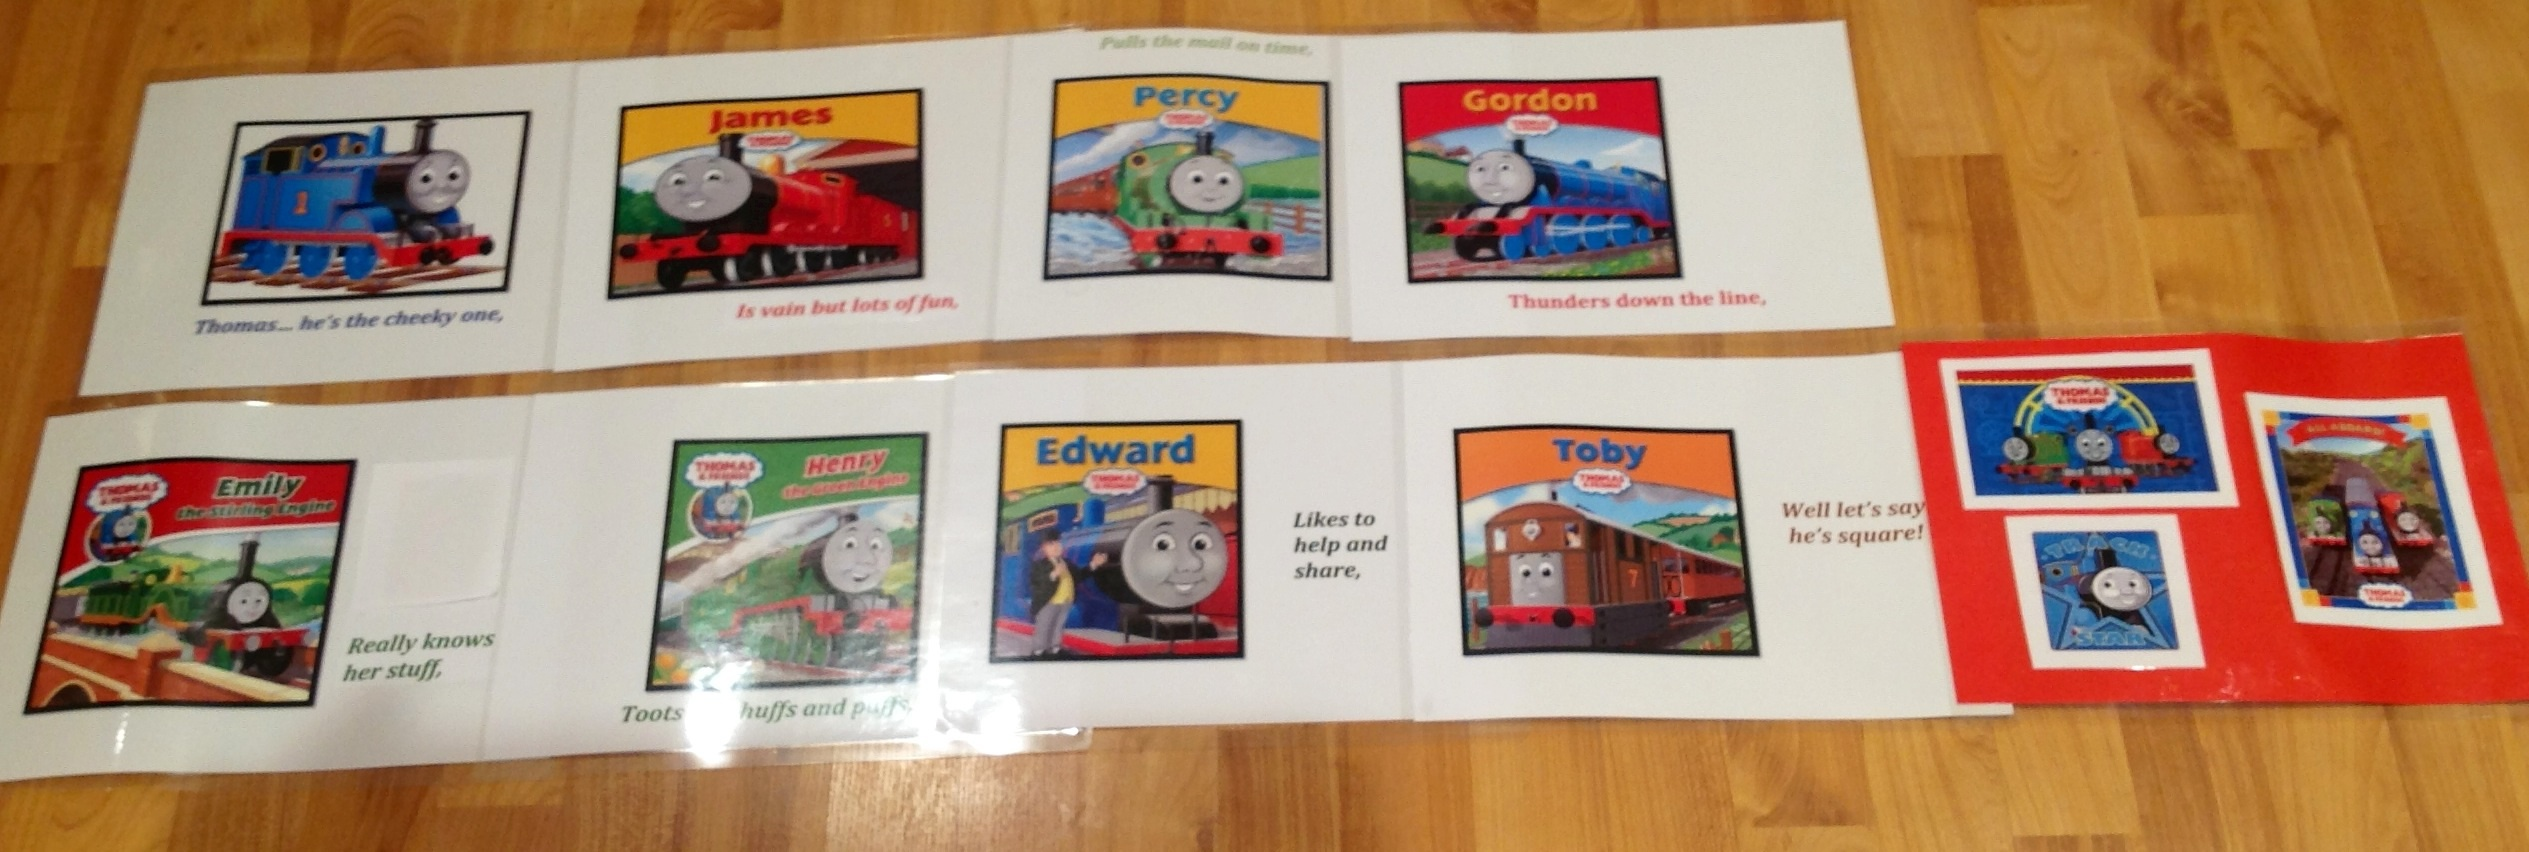 Diy thomas the tank engine party everywhere large image make your own thomas invitation solutioingenieria Image collections